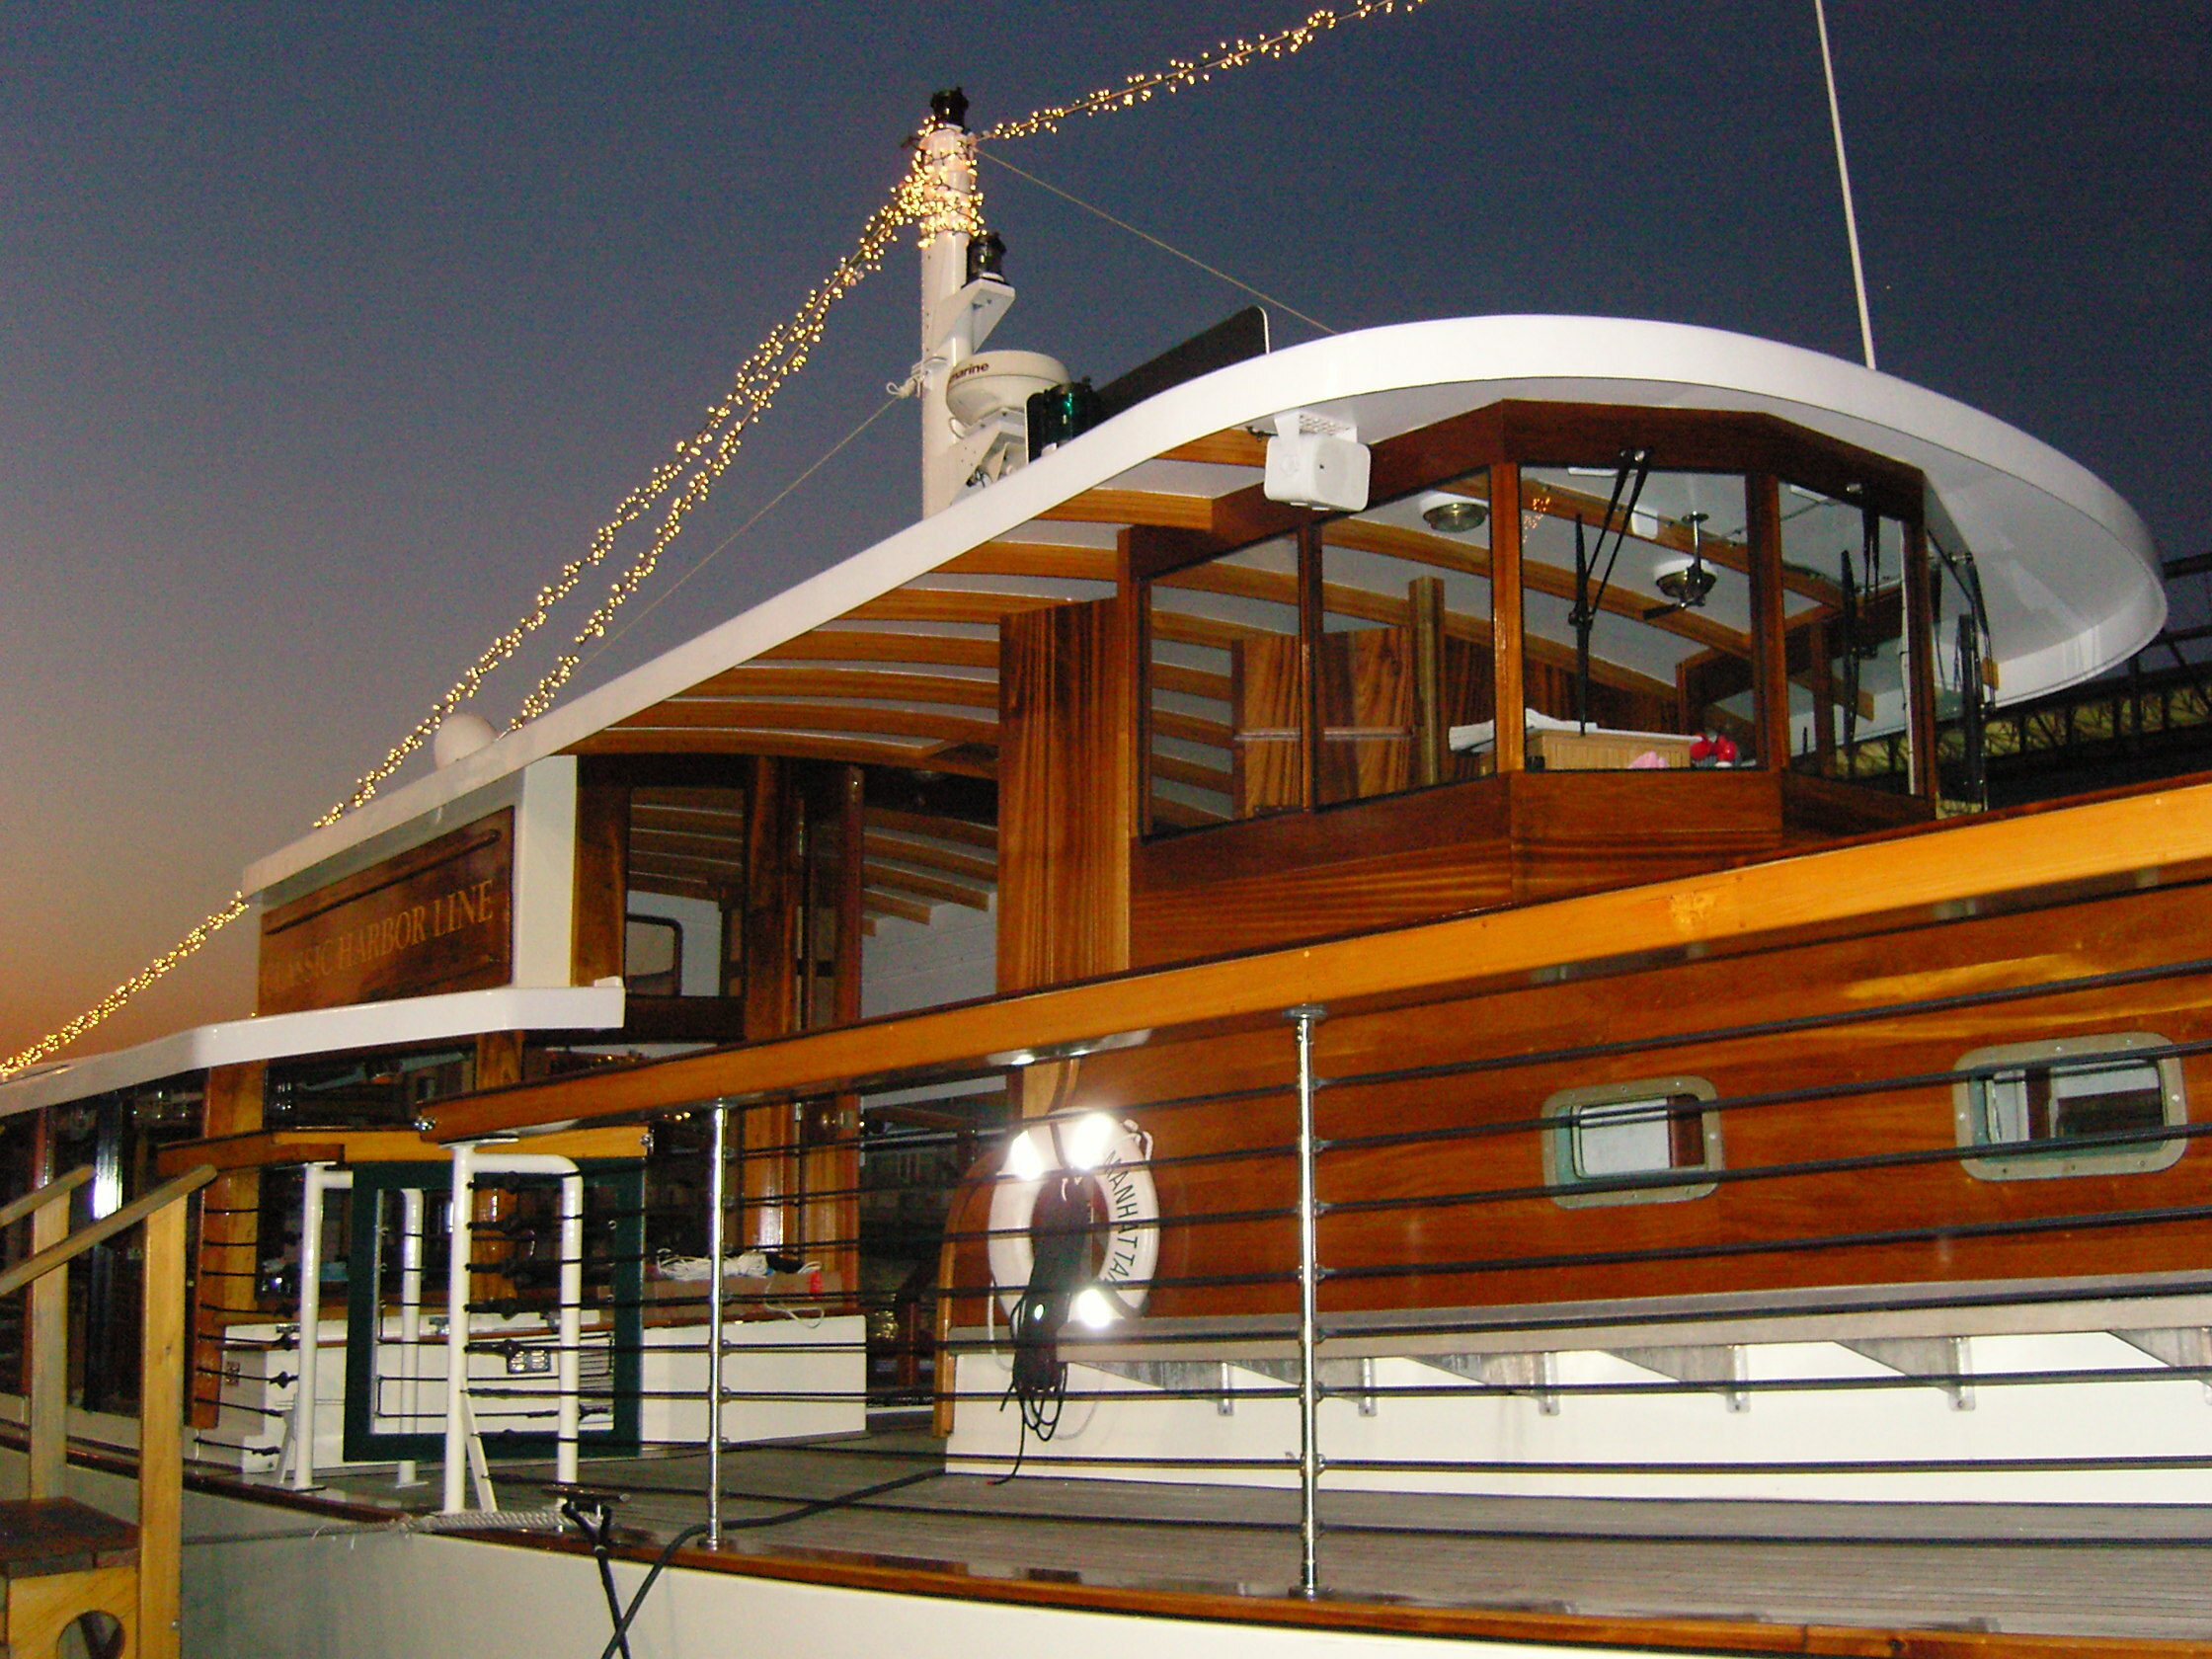 Holiday Brunch Cruise on the Yacht